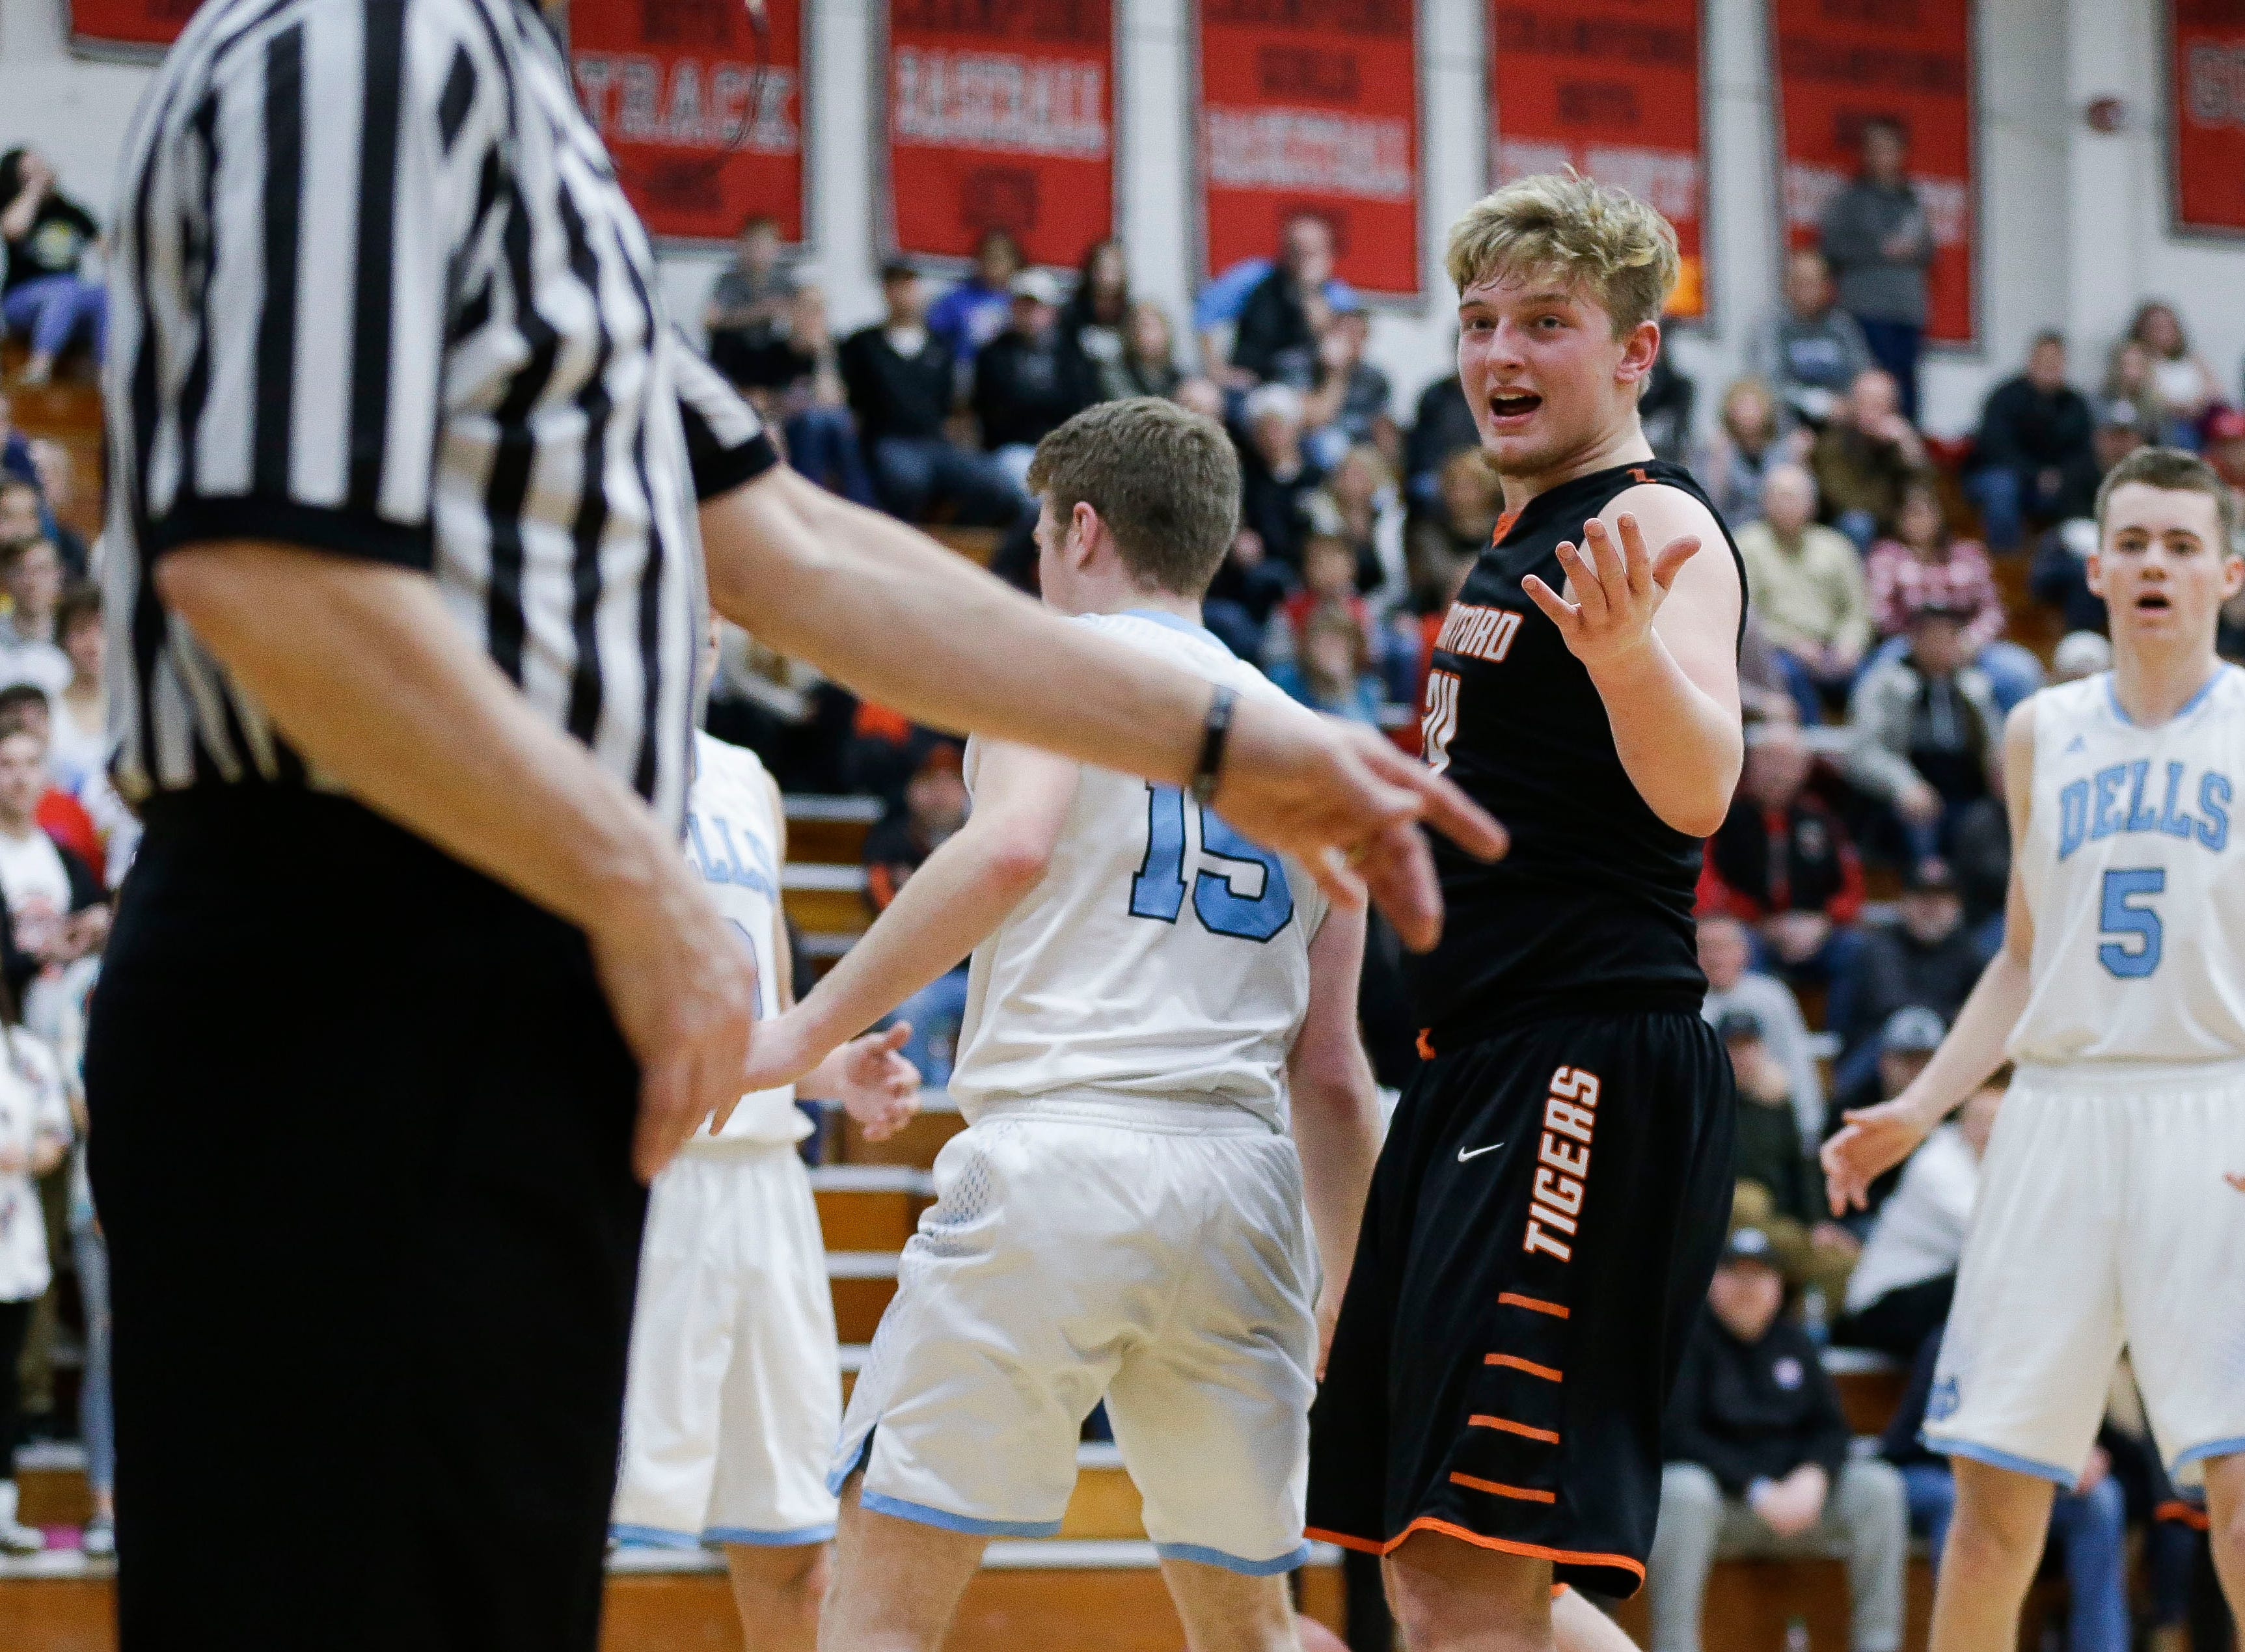 Stratford's Ben Barten (24) reacts to being called for a foul against Wisconsin Dells in a Division 3 sectional semifinal on Thursday, March 7, 2019, at Stevens Point Area High School in Stevens Point, Wis.  Tork Mason/USA TODAY NETWORK-Wisconsin